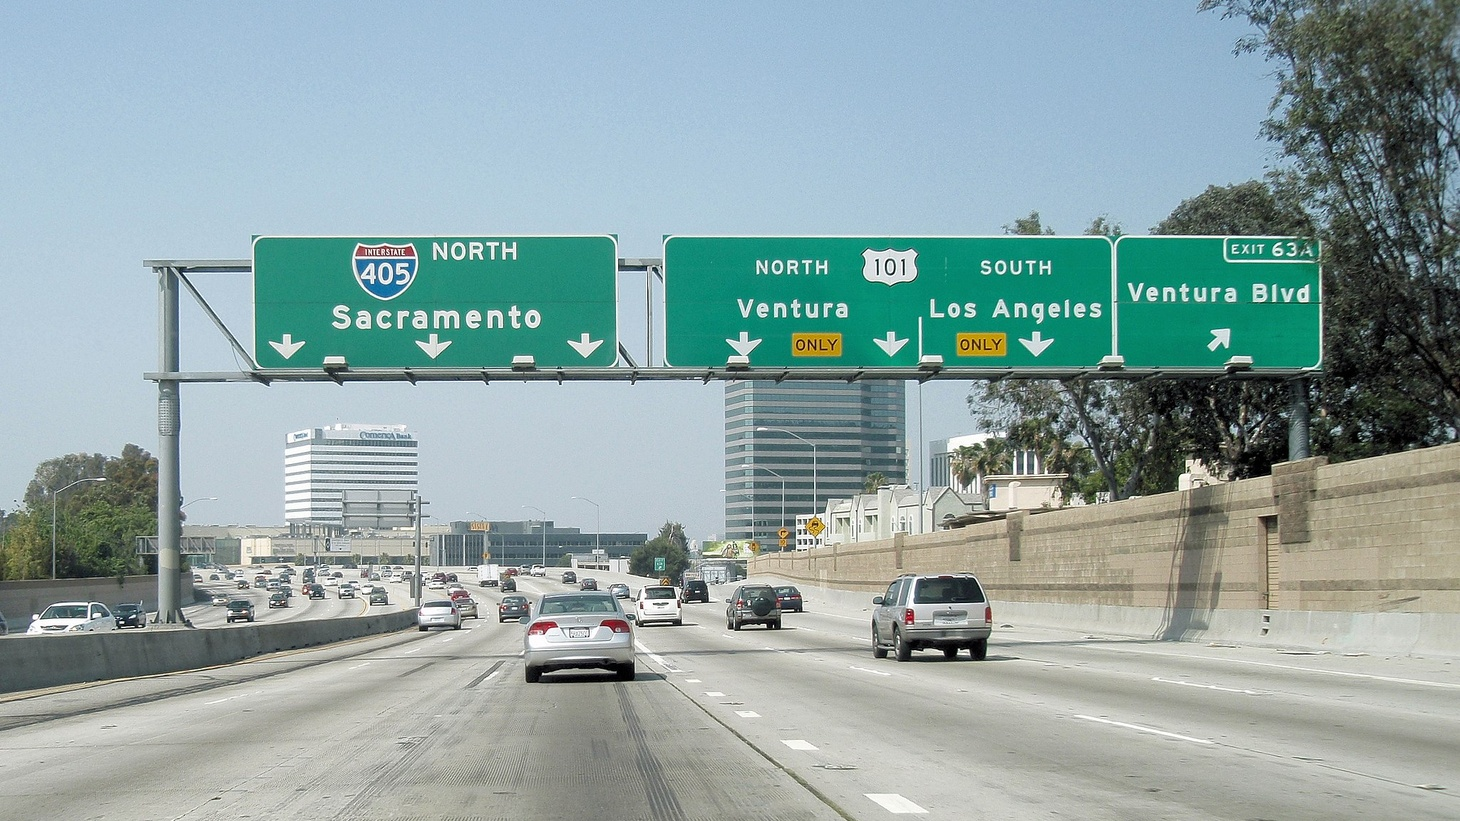 The 405 freeway northbound approaching the Ventura Blvd and Ventura freeway interchanges.